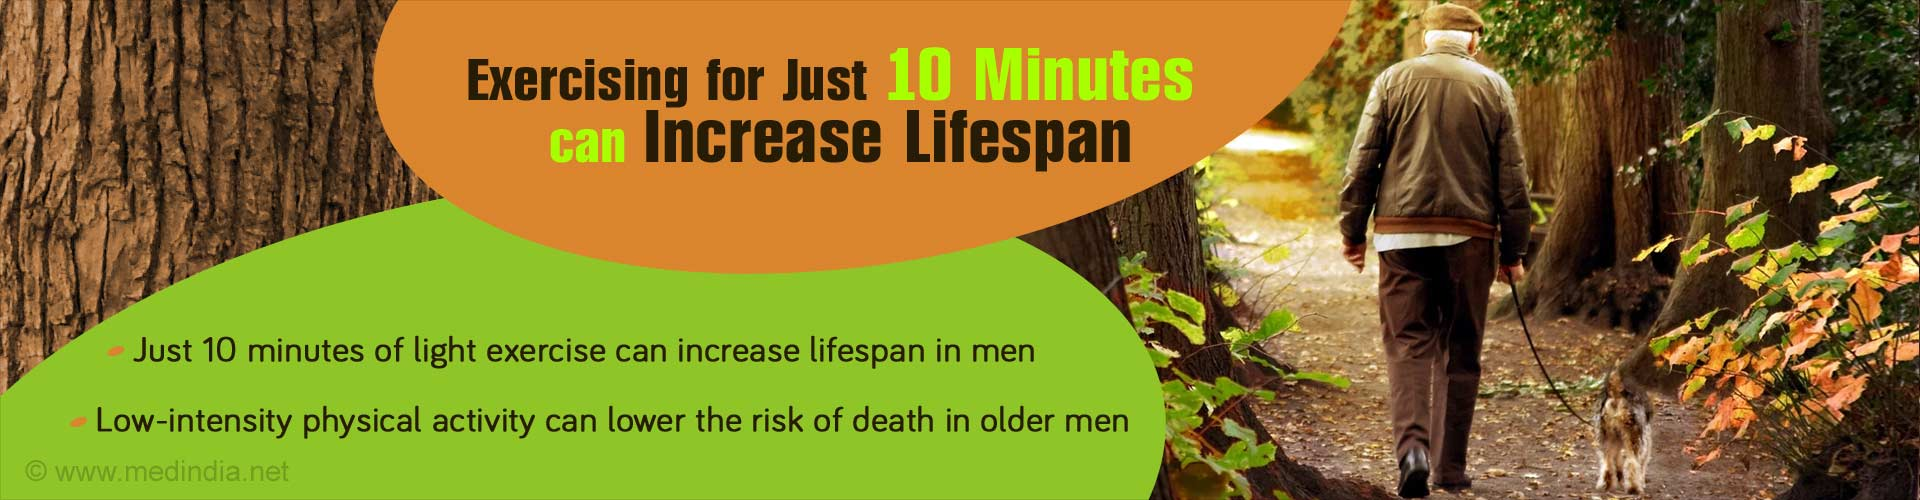 Just 10 minutes of Light Exercise can Increase Lifespan in Men